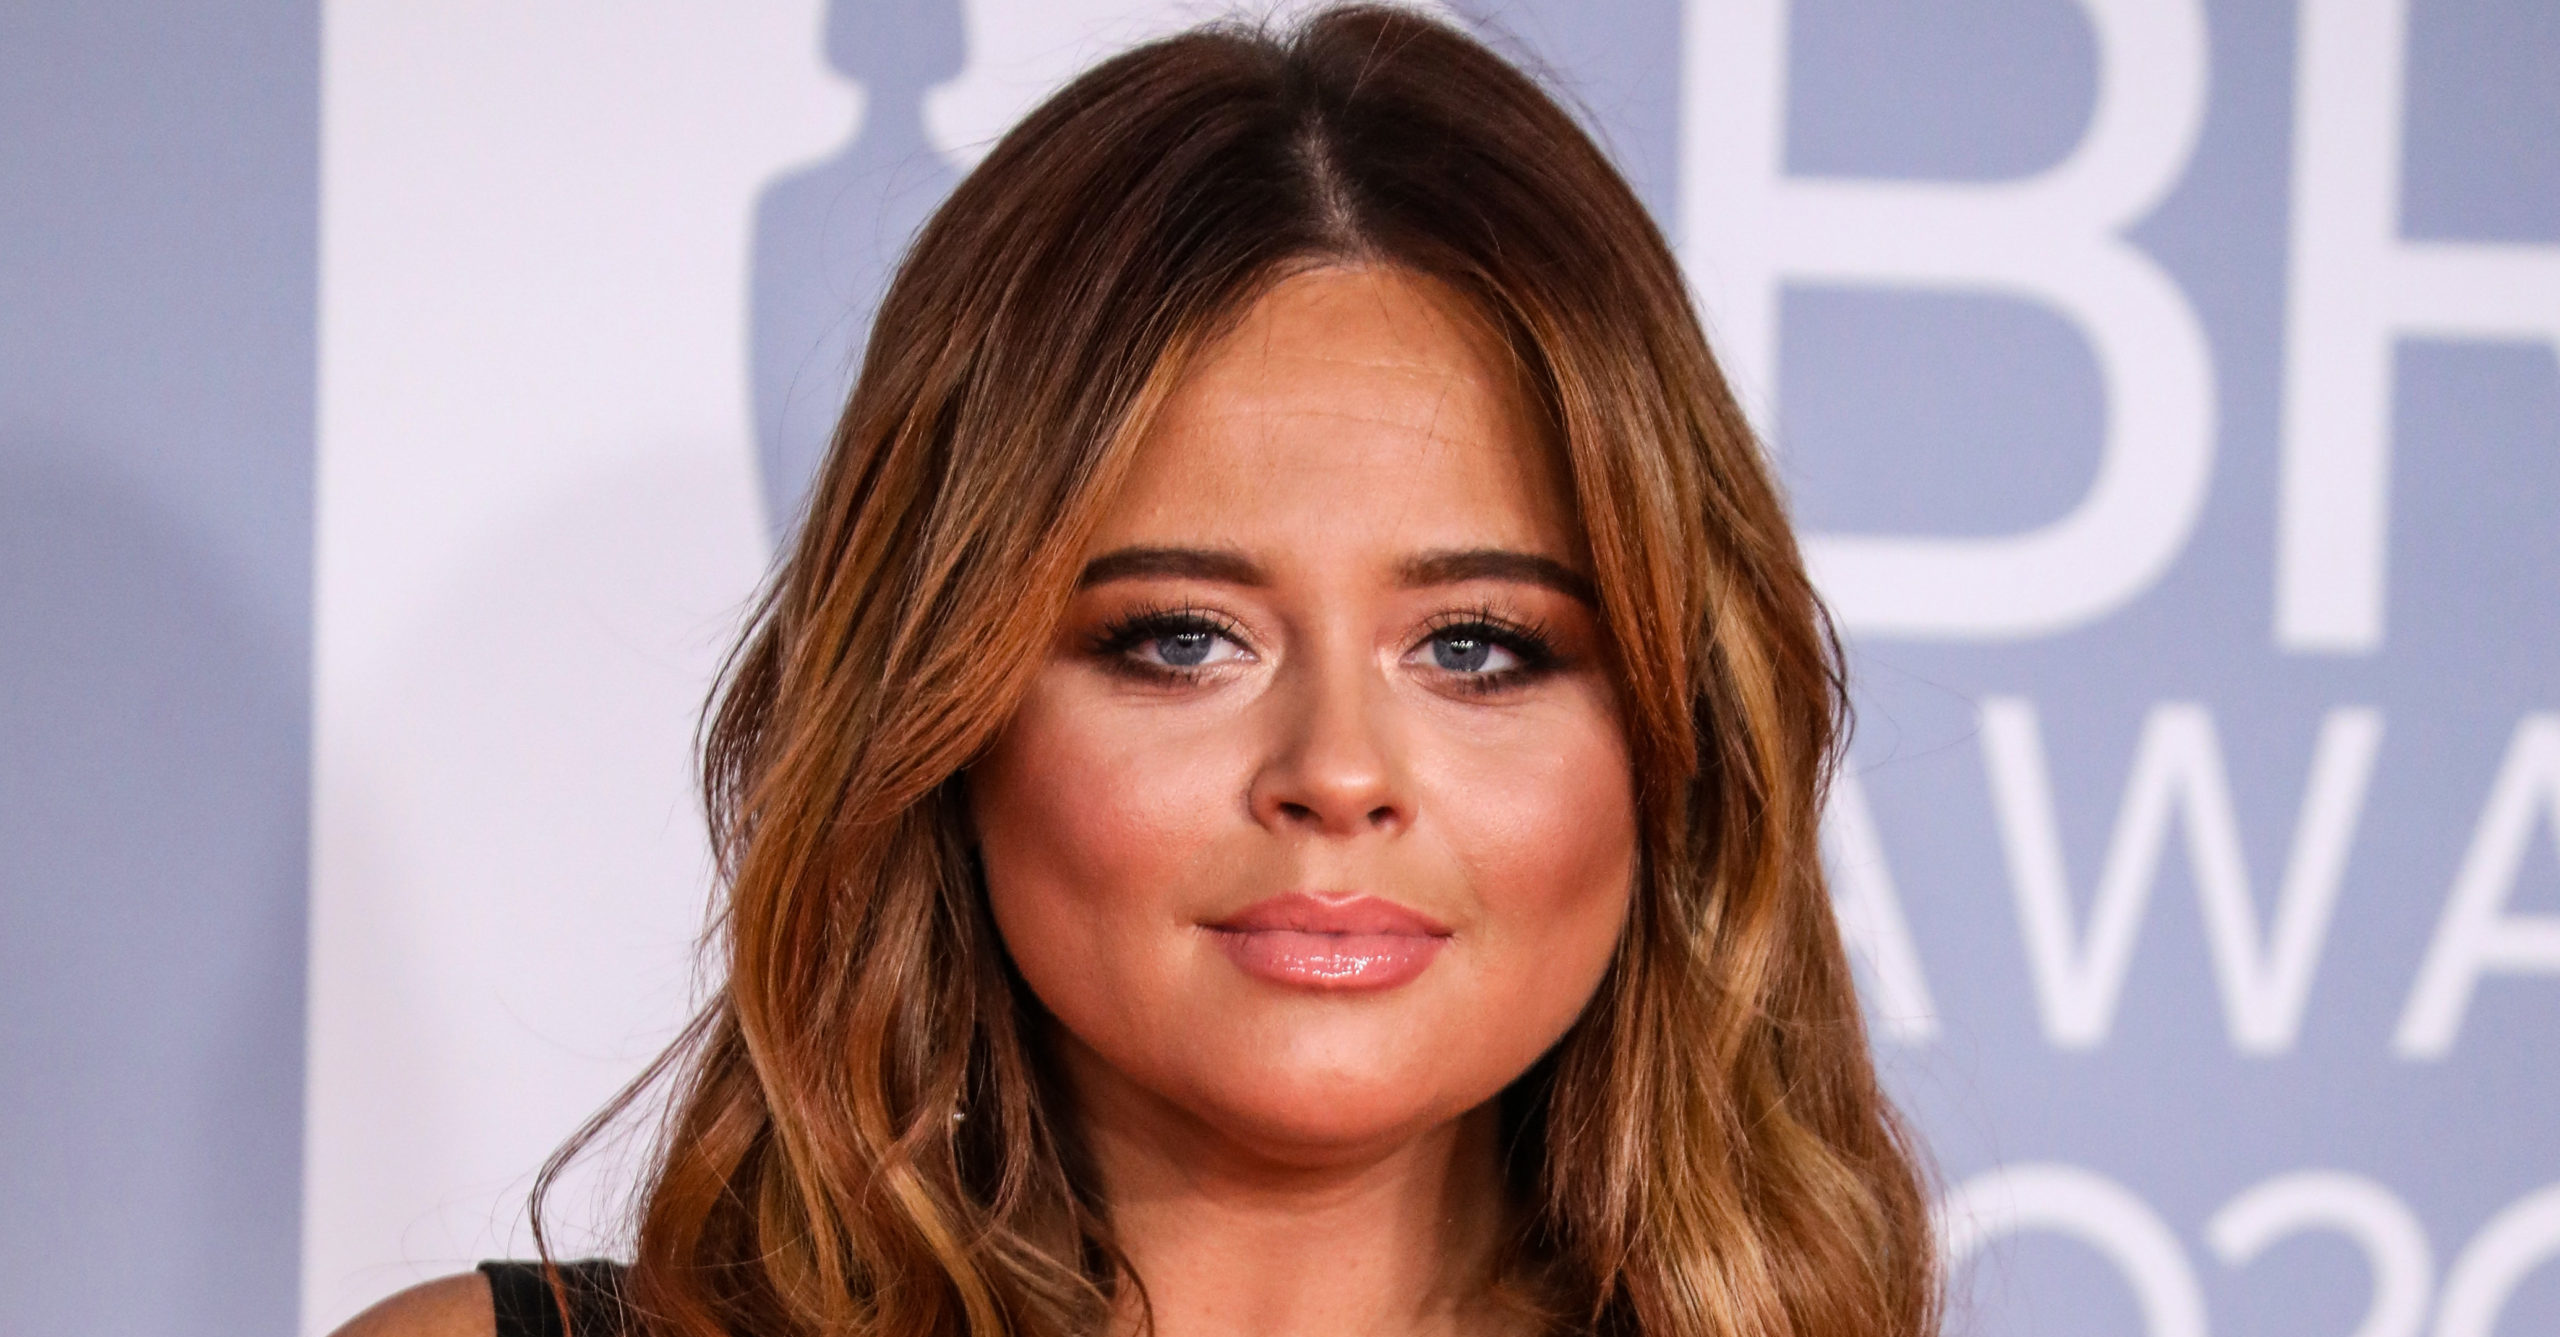 Emily Atack looks sensational as she shows off the results of her lockdown hair and body transformation